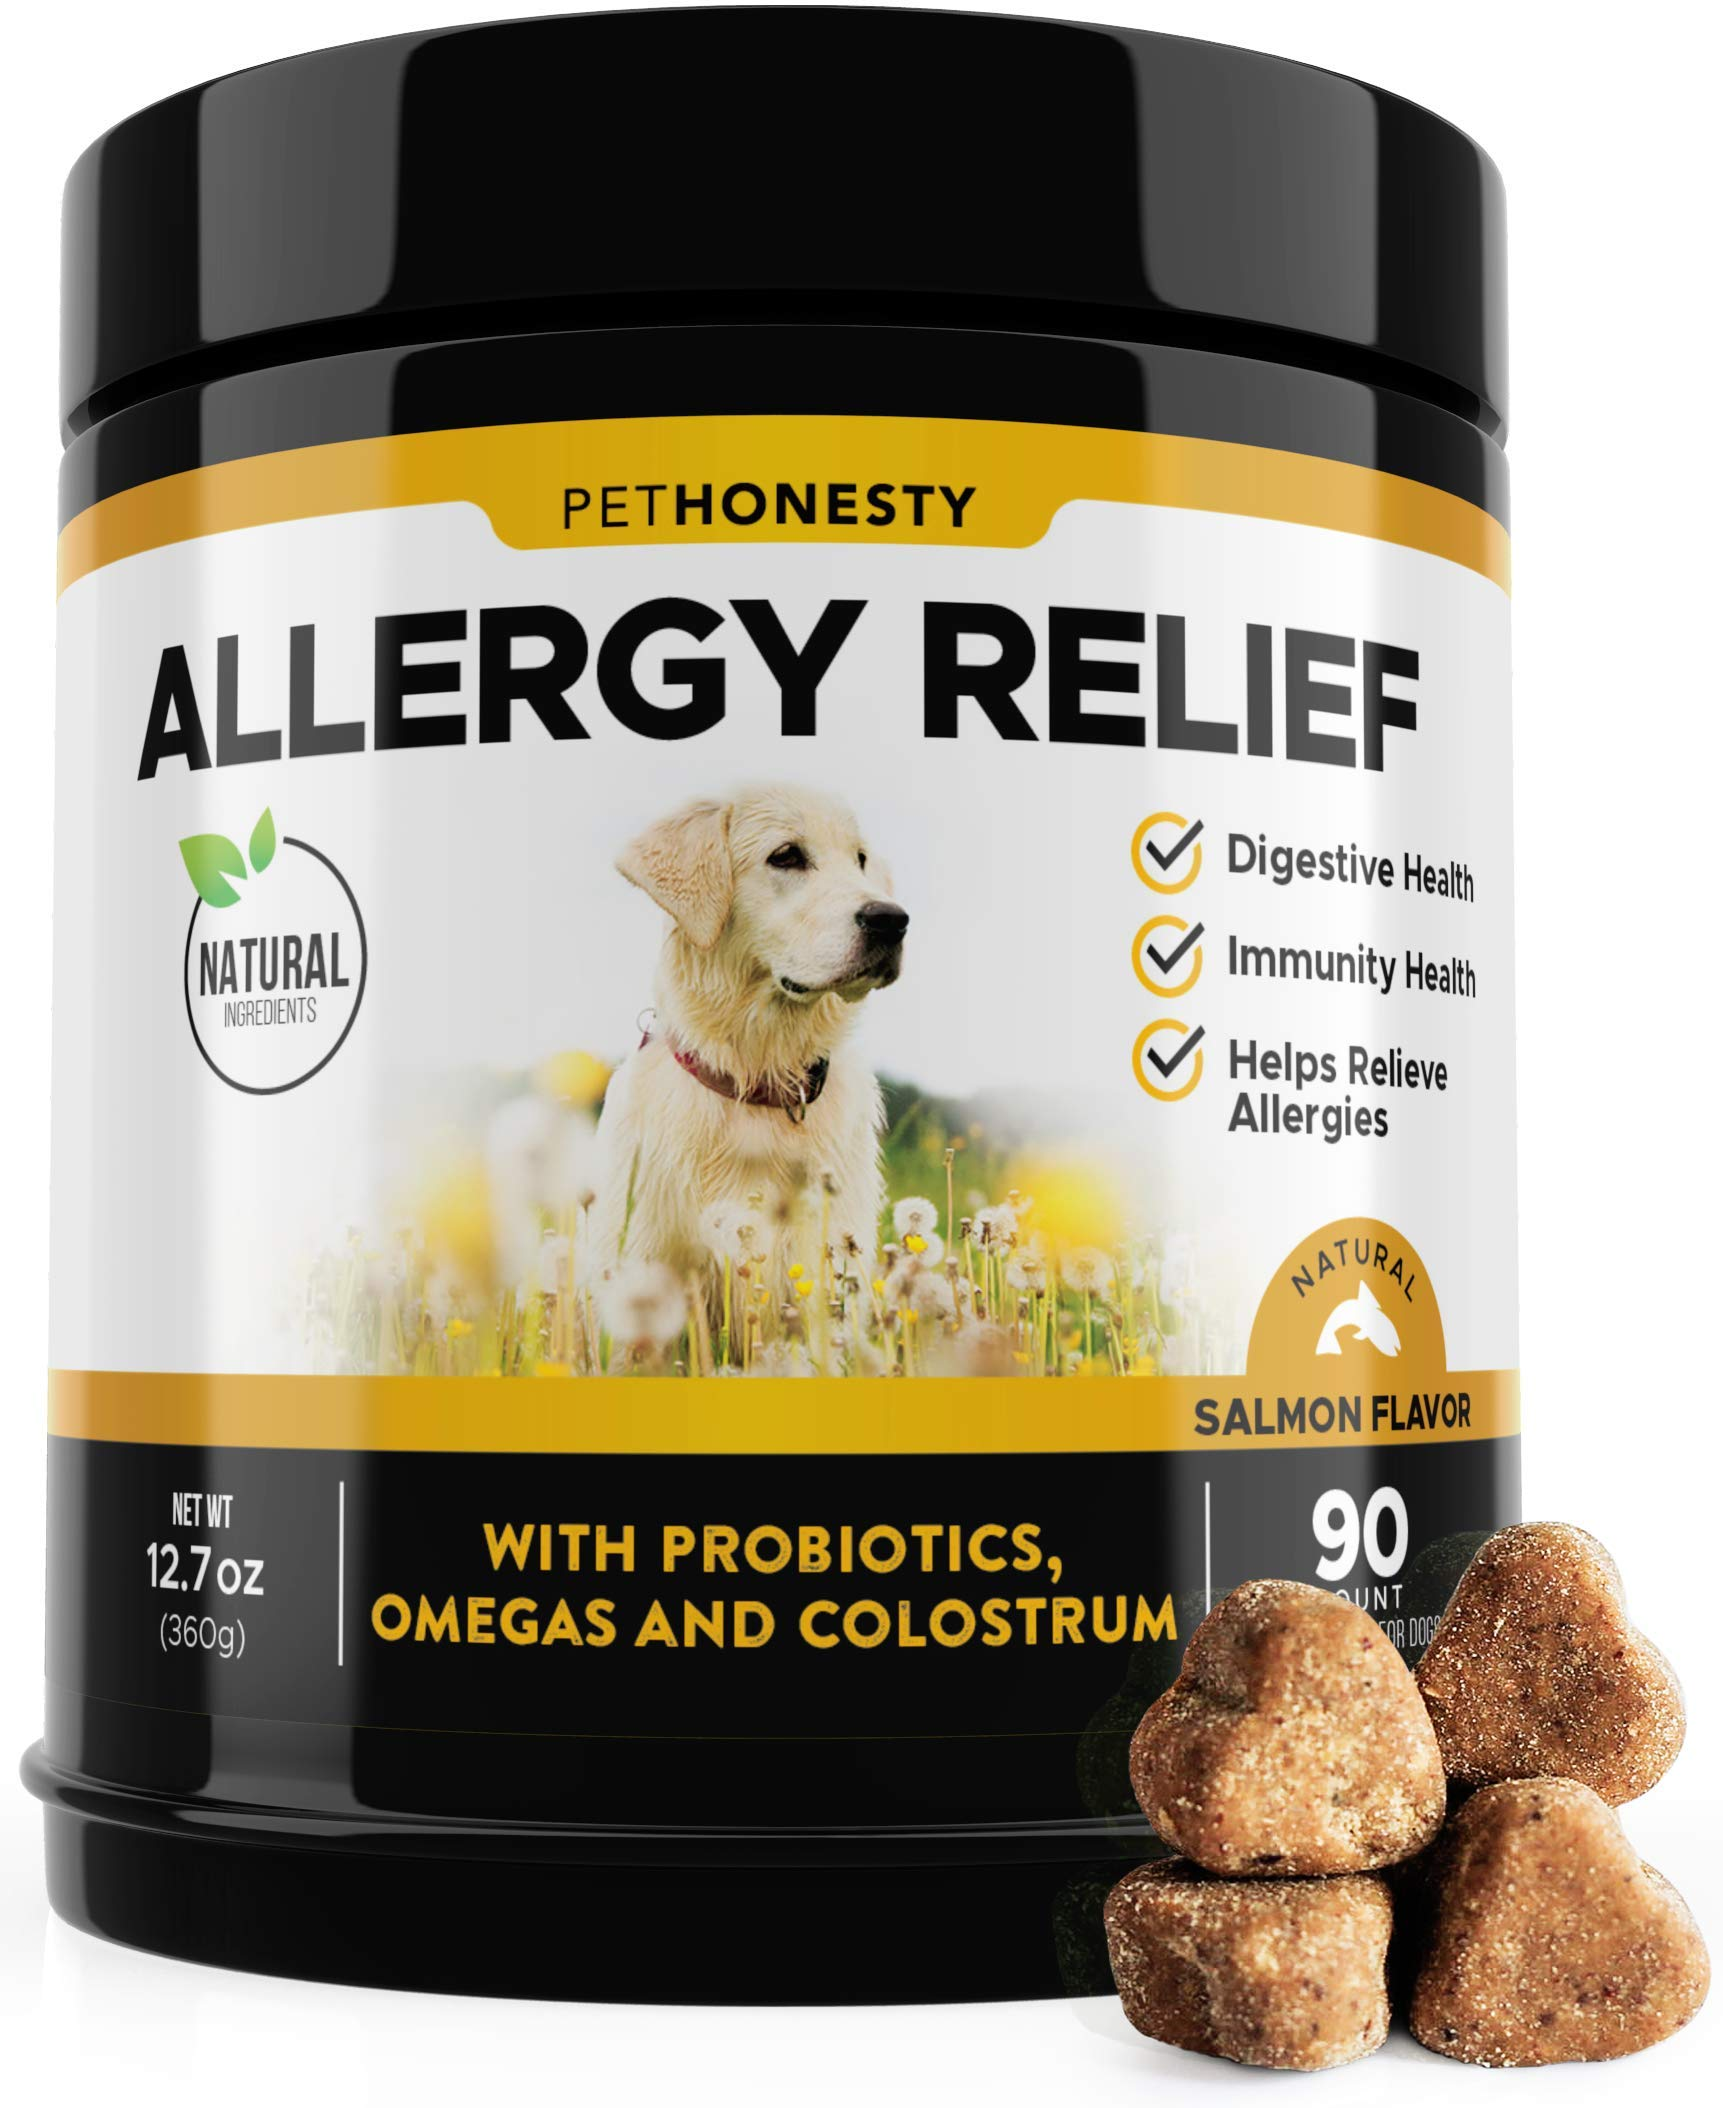 Allergy Relief Immunity Supplement for Dogs - Omega 3 Salmon Fish Oil, Colostrum, Digestive Prebiotics & Probiotics - for Seasonal Allergies + Anti Itch, Skin Hot Spots Soft Chews by PetHonesty